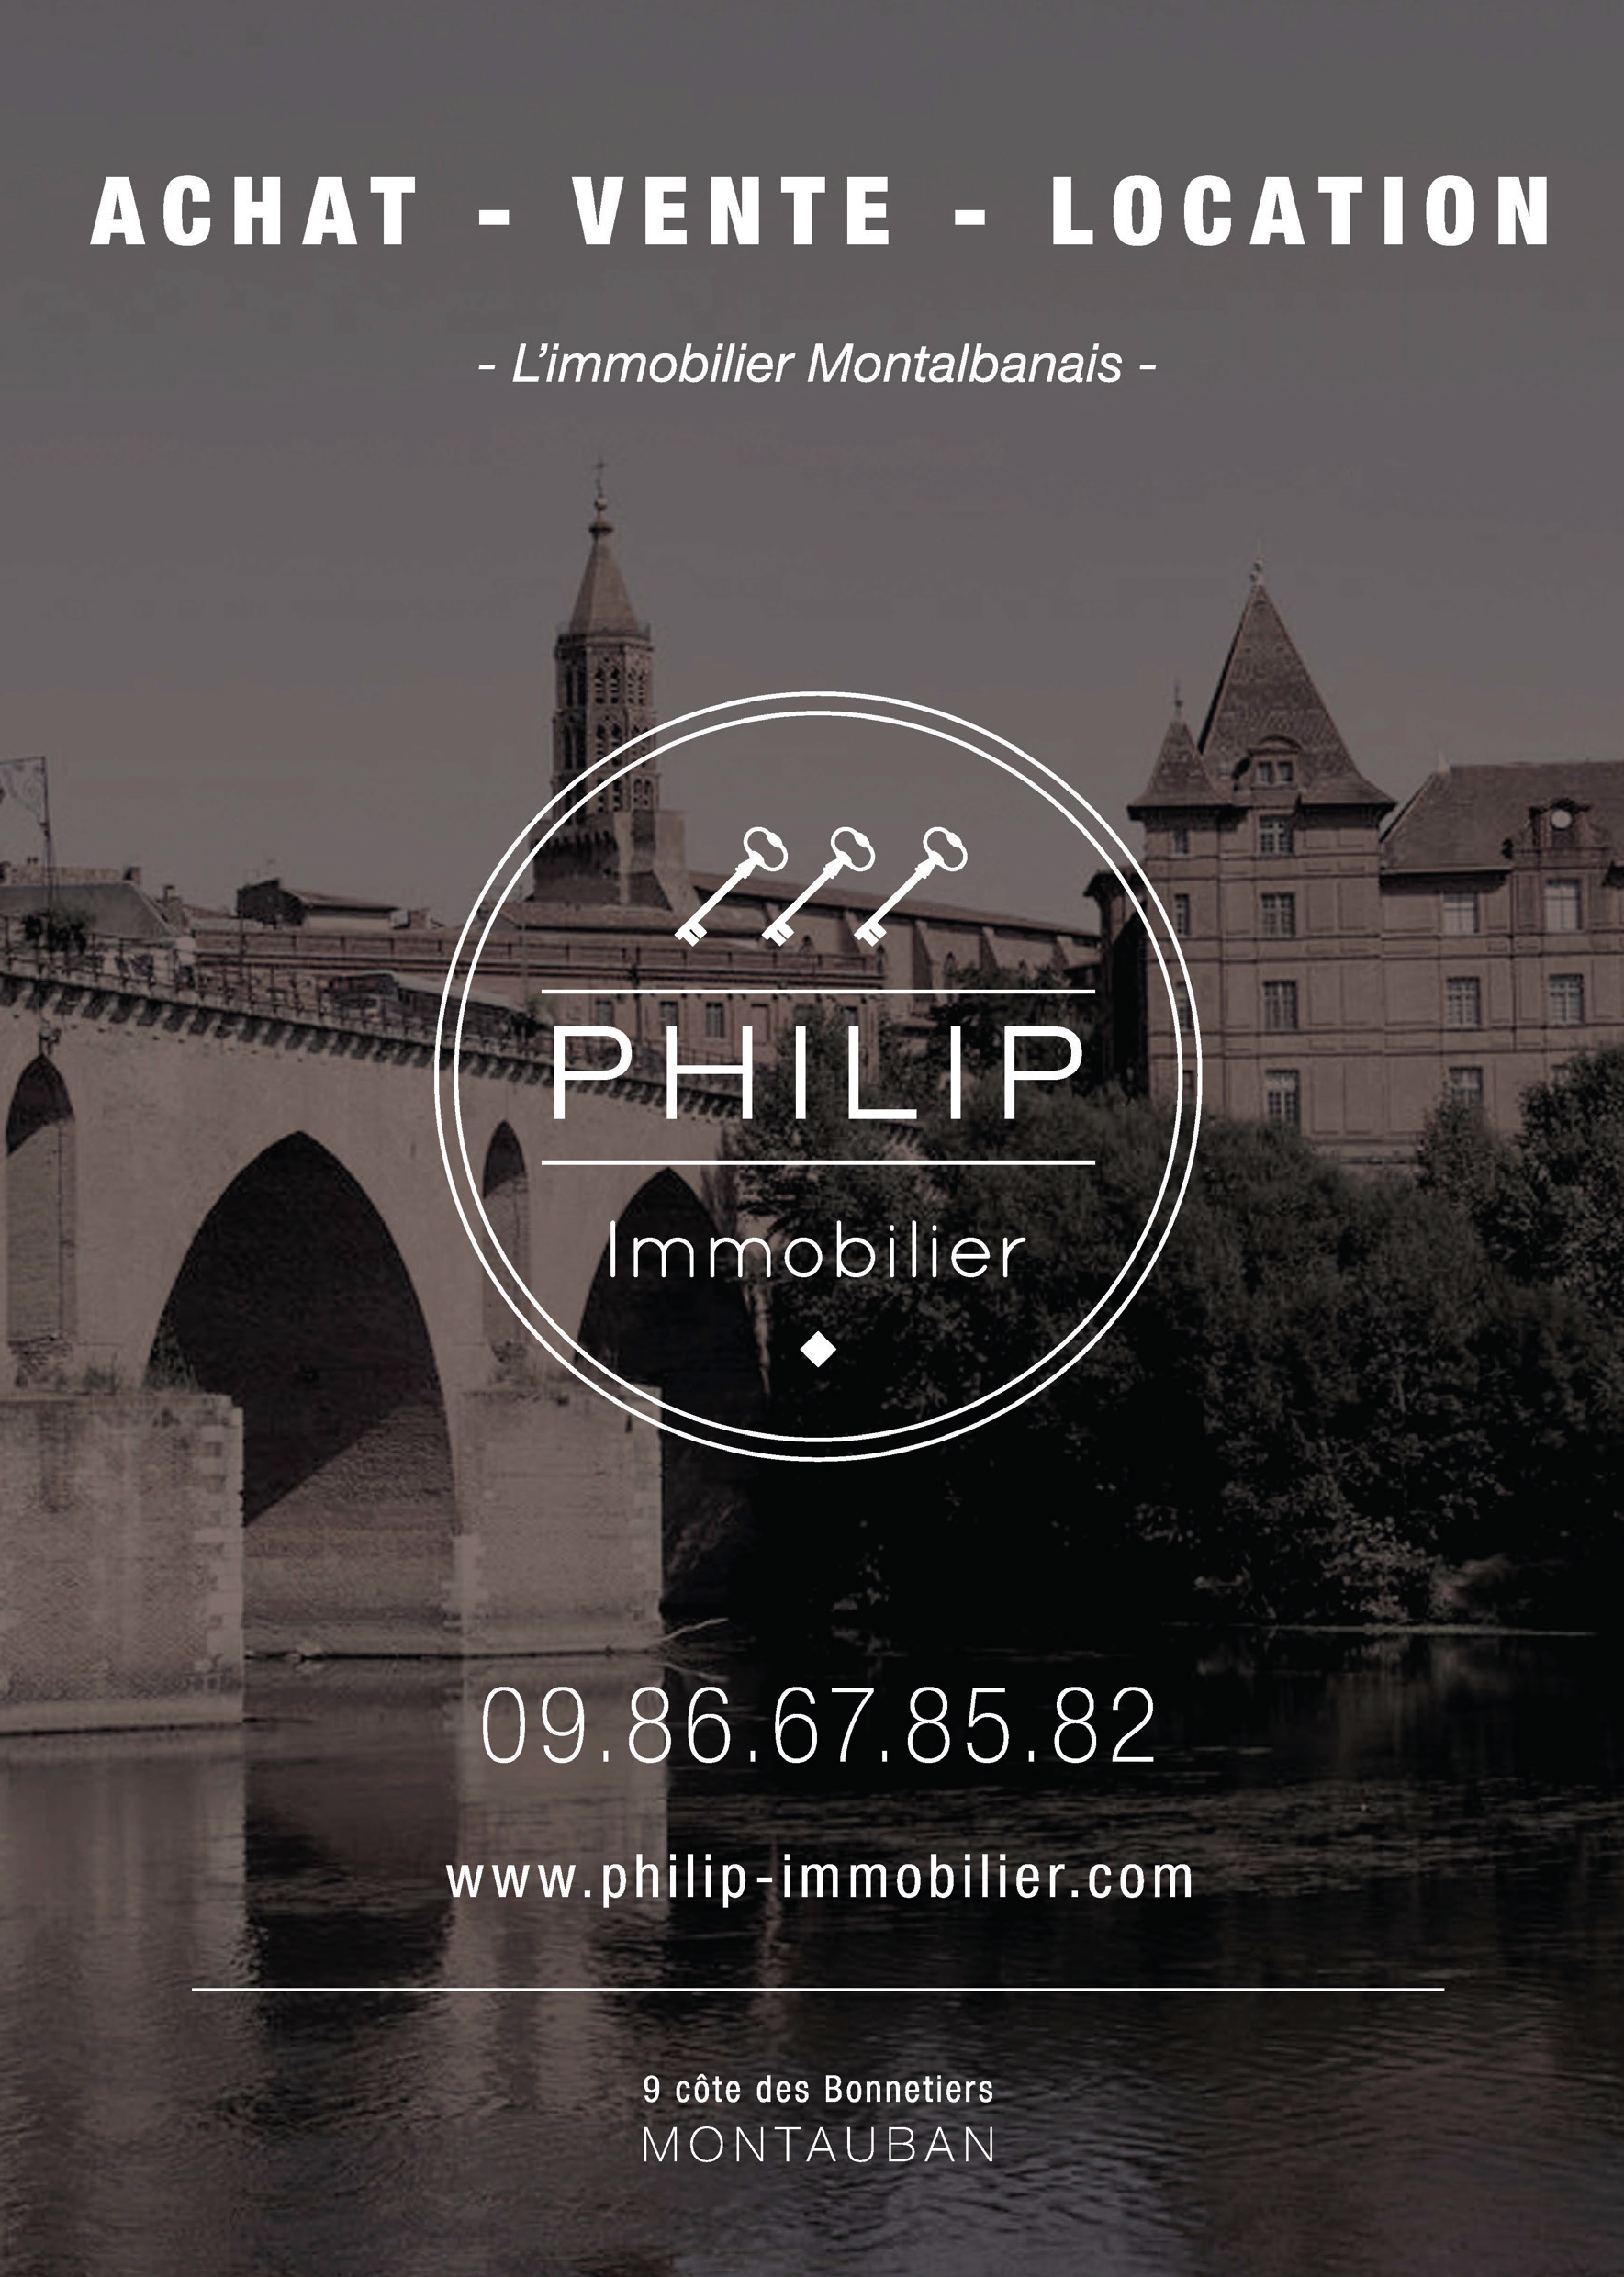 Immobilier Philip